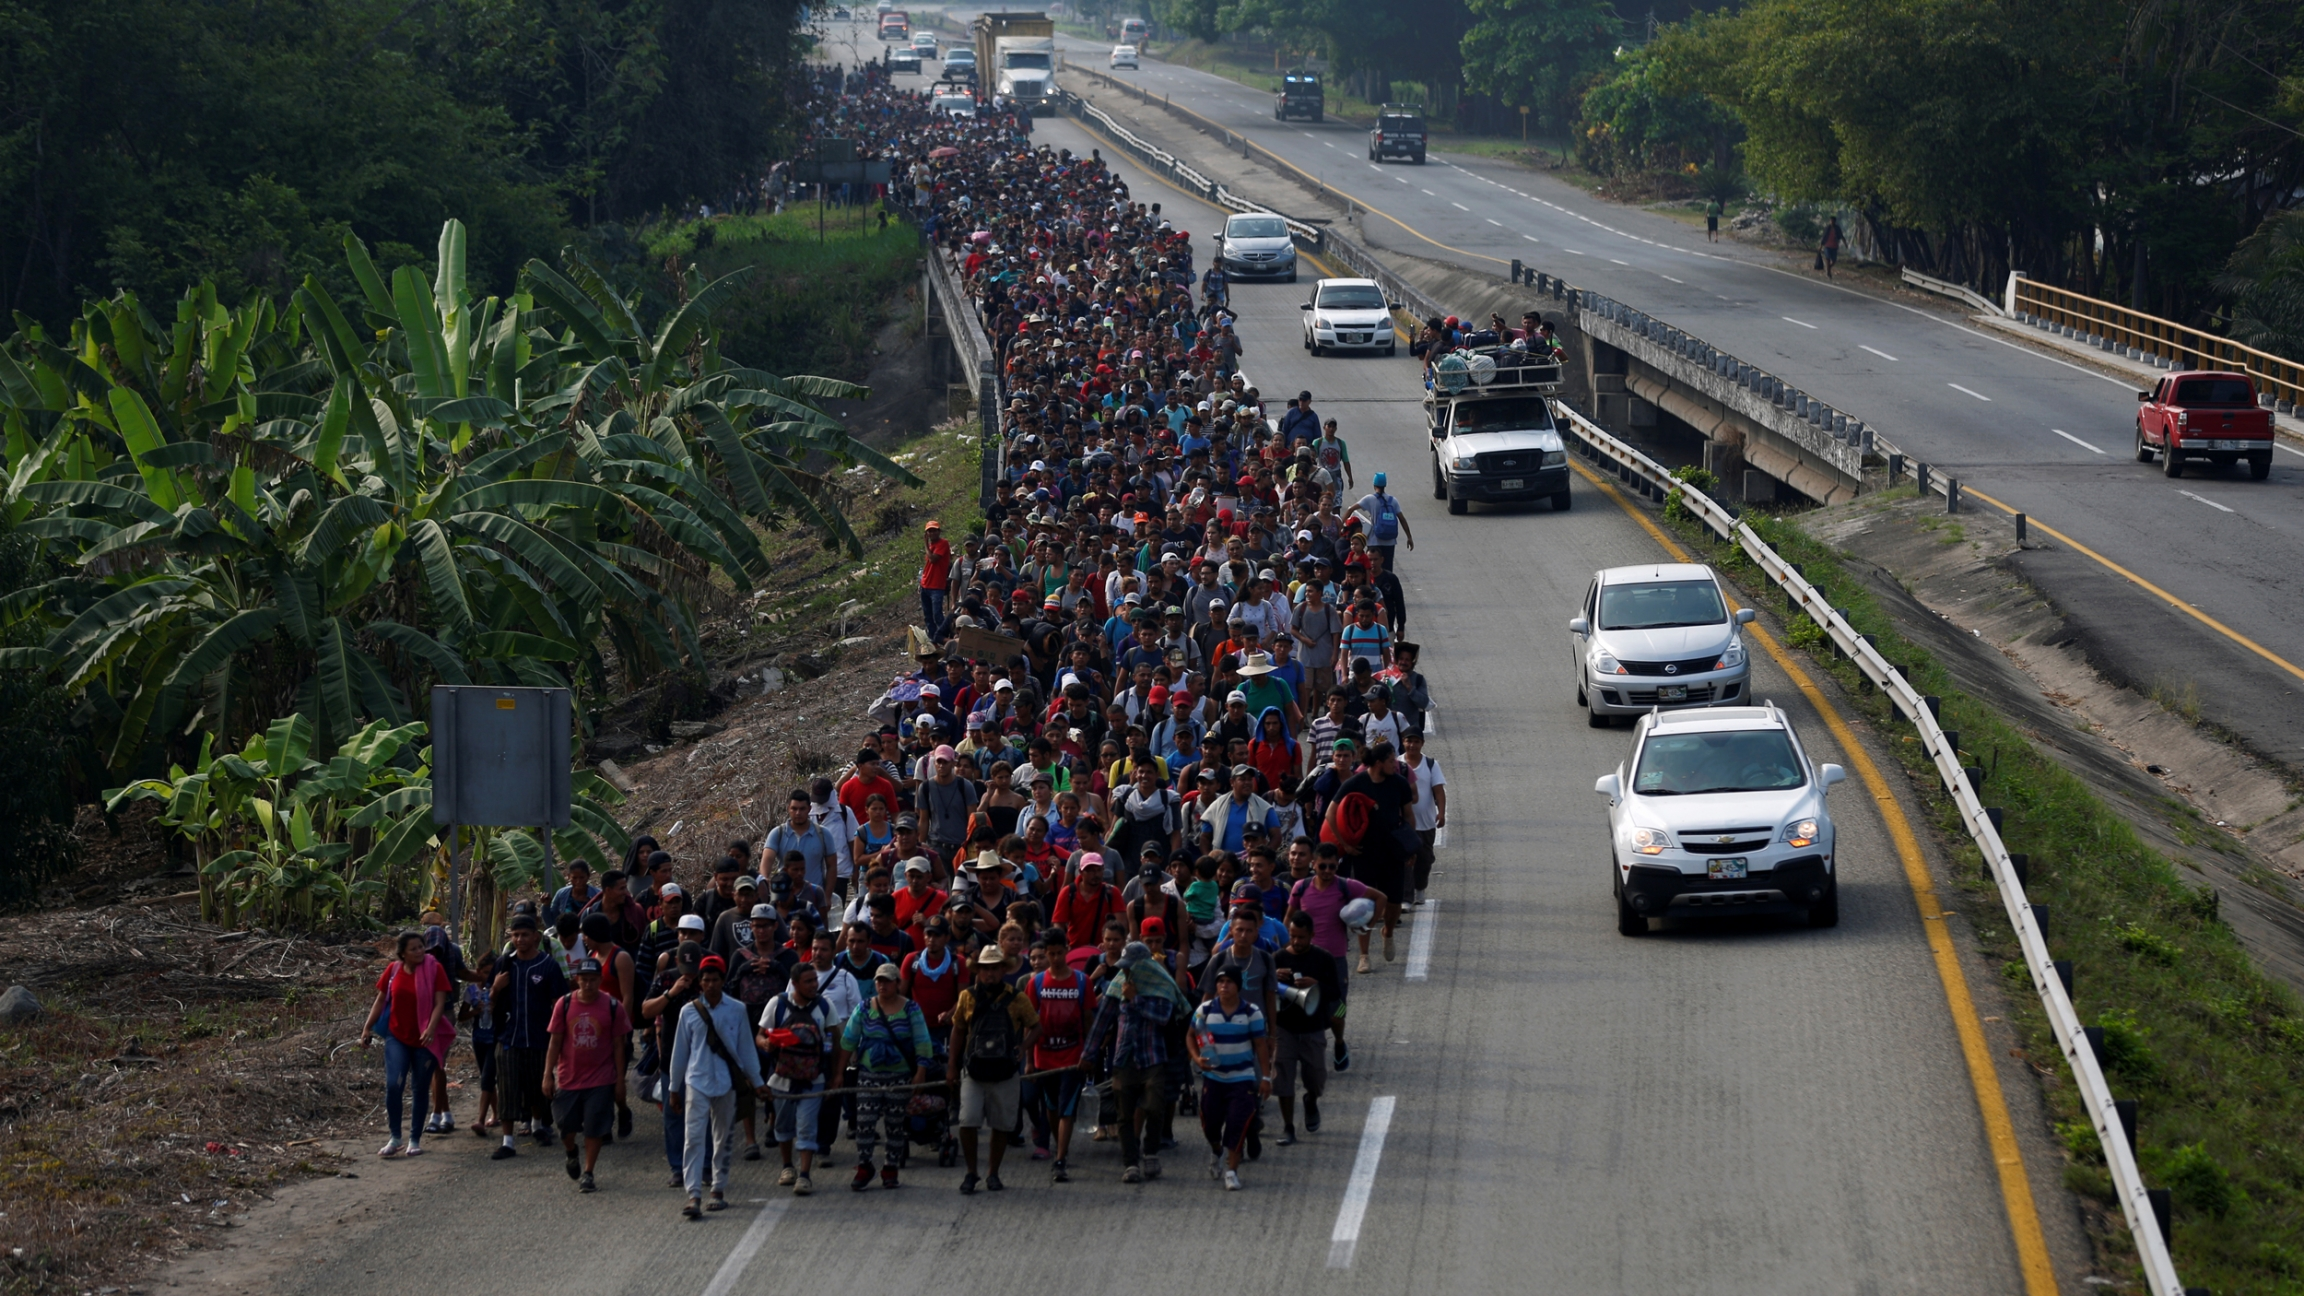 A long line of people, hundreds and hundreds, walk in one lane of a highway in a large mass.